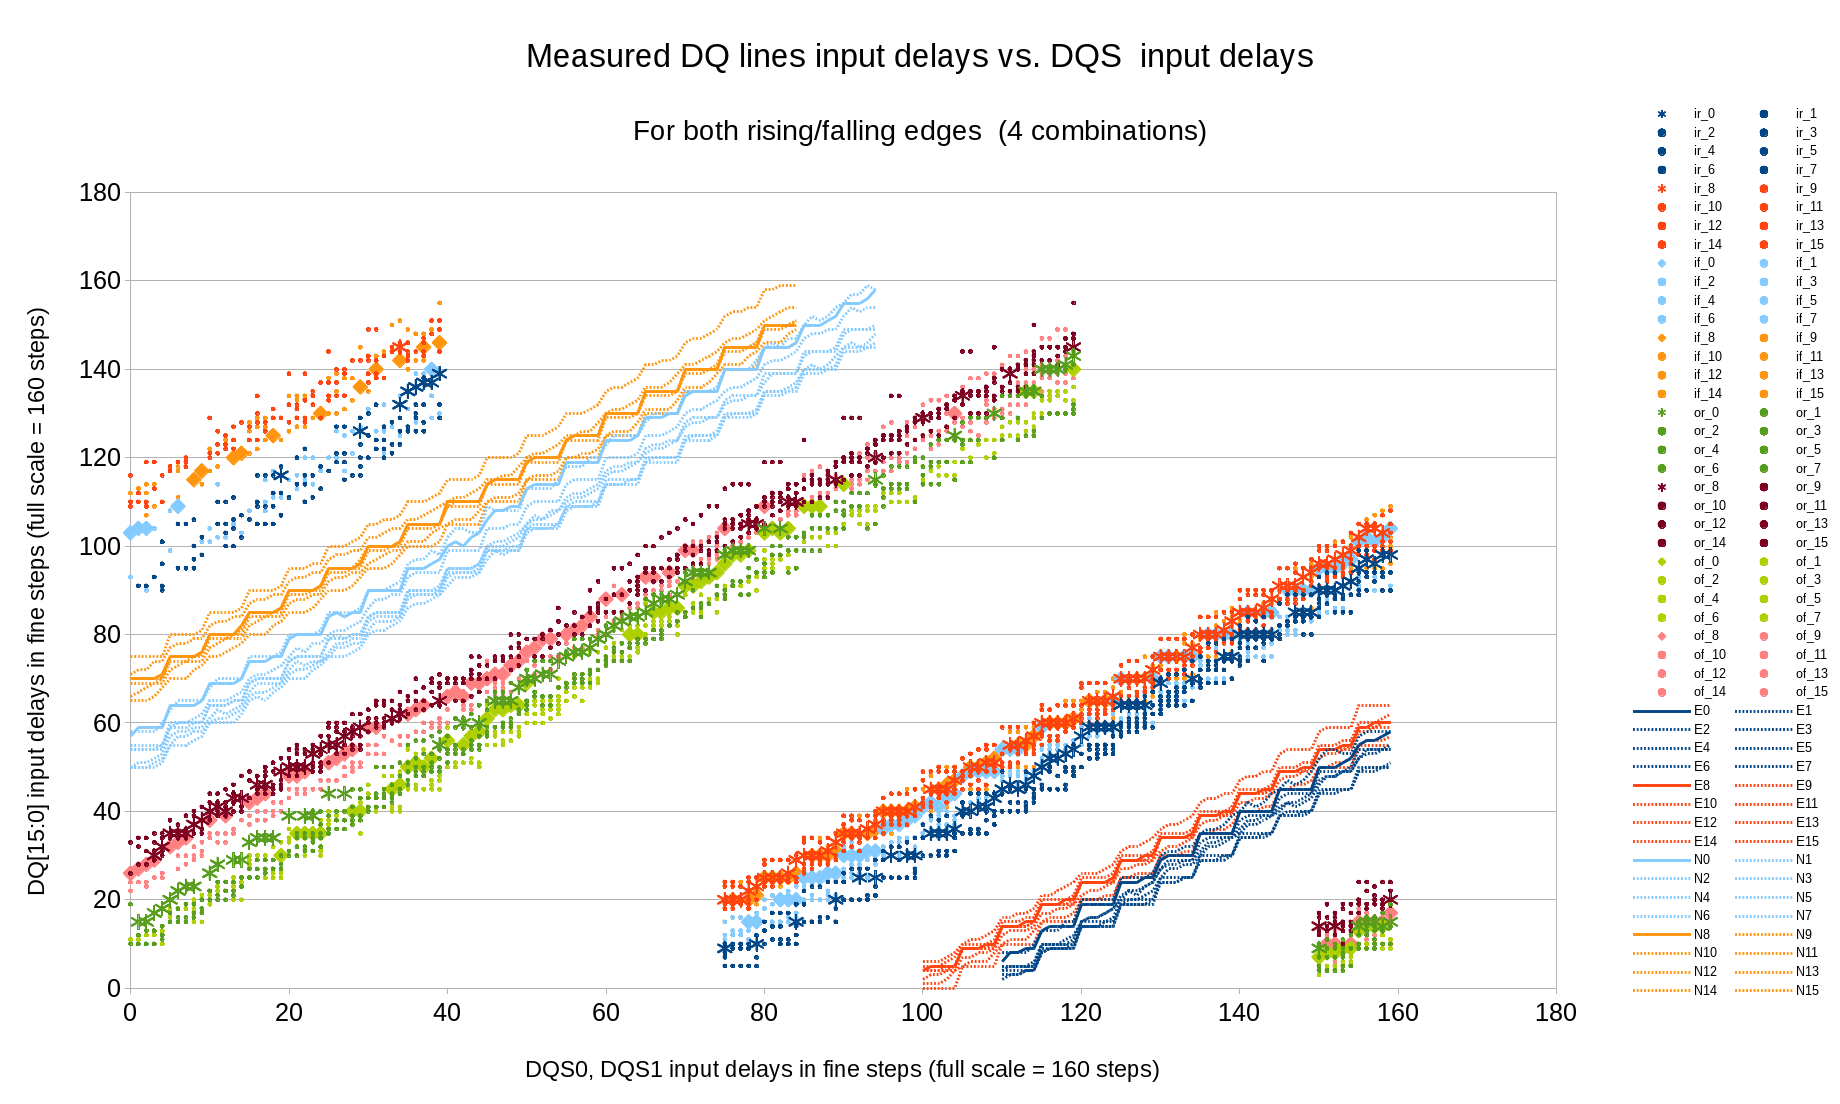 Fig.6 Measured (marginal) and calculated (optimal) DQ input delays vs. DQS input delays